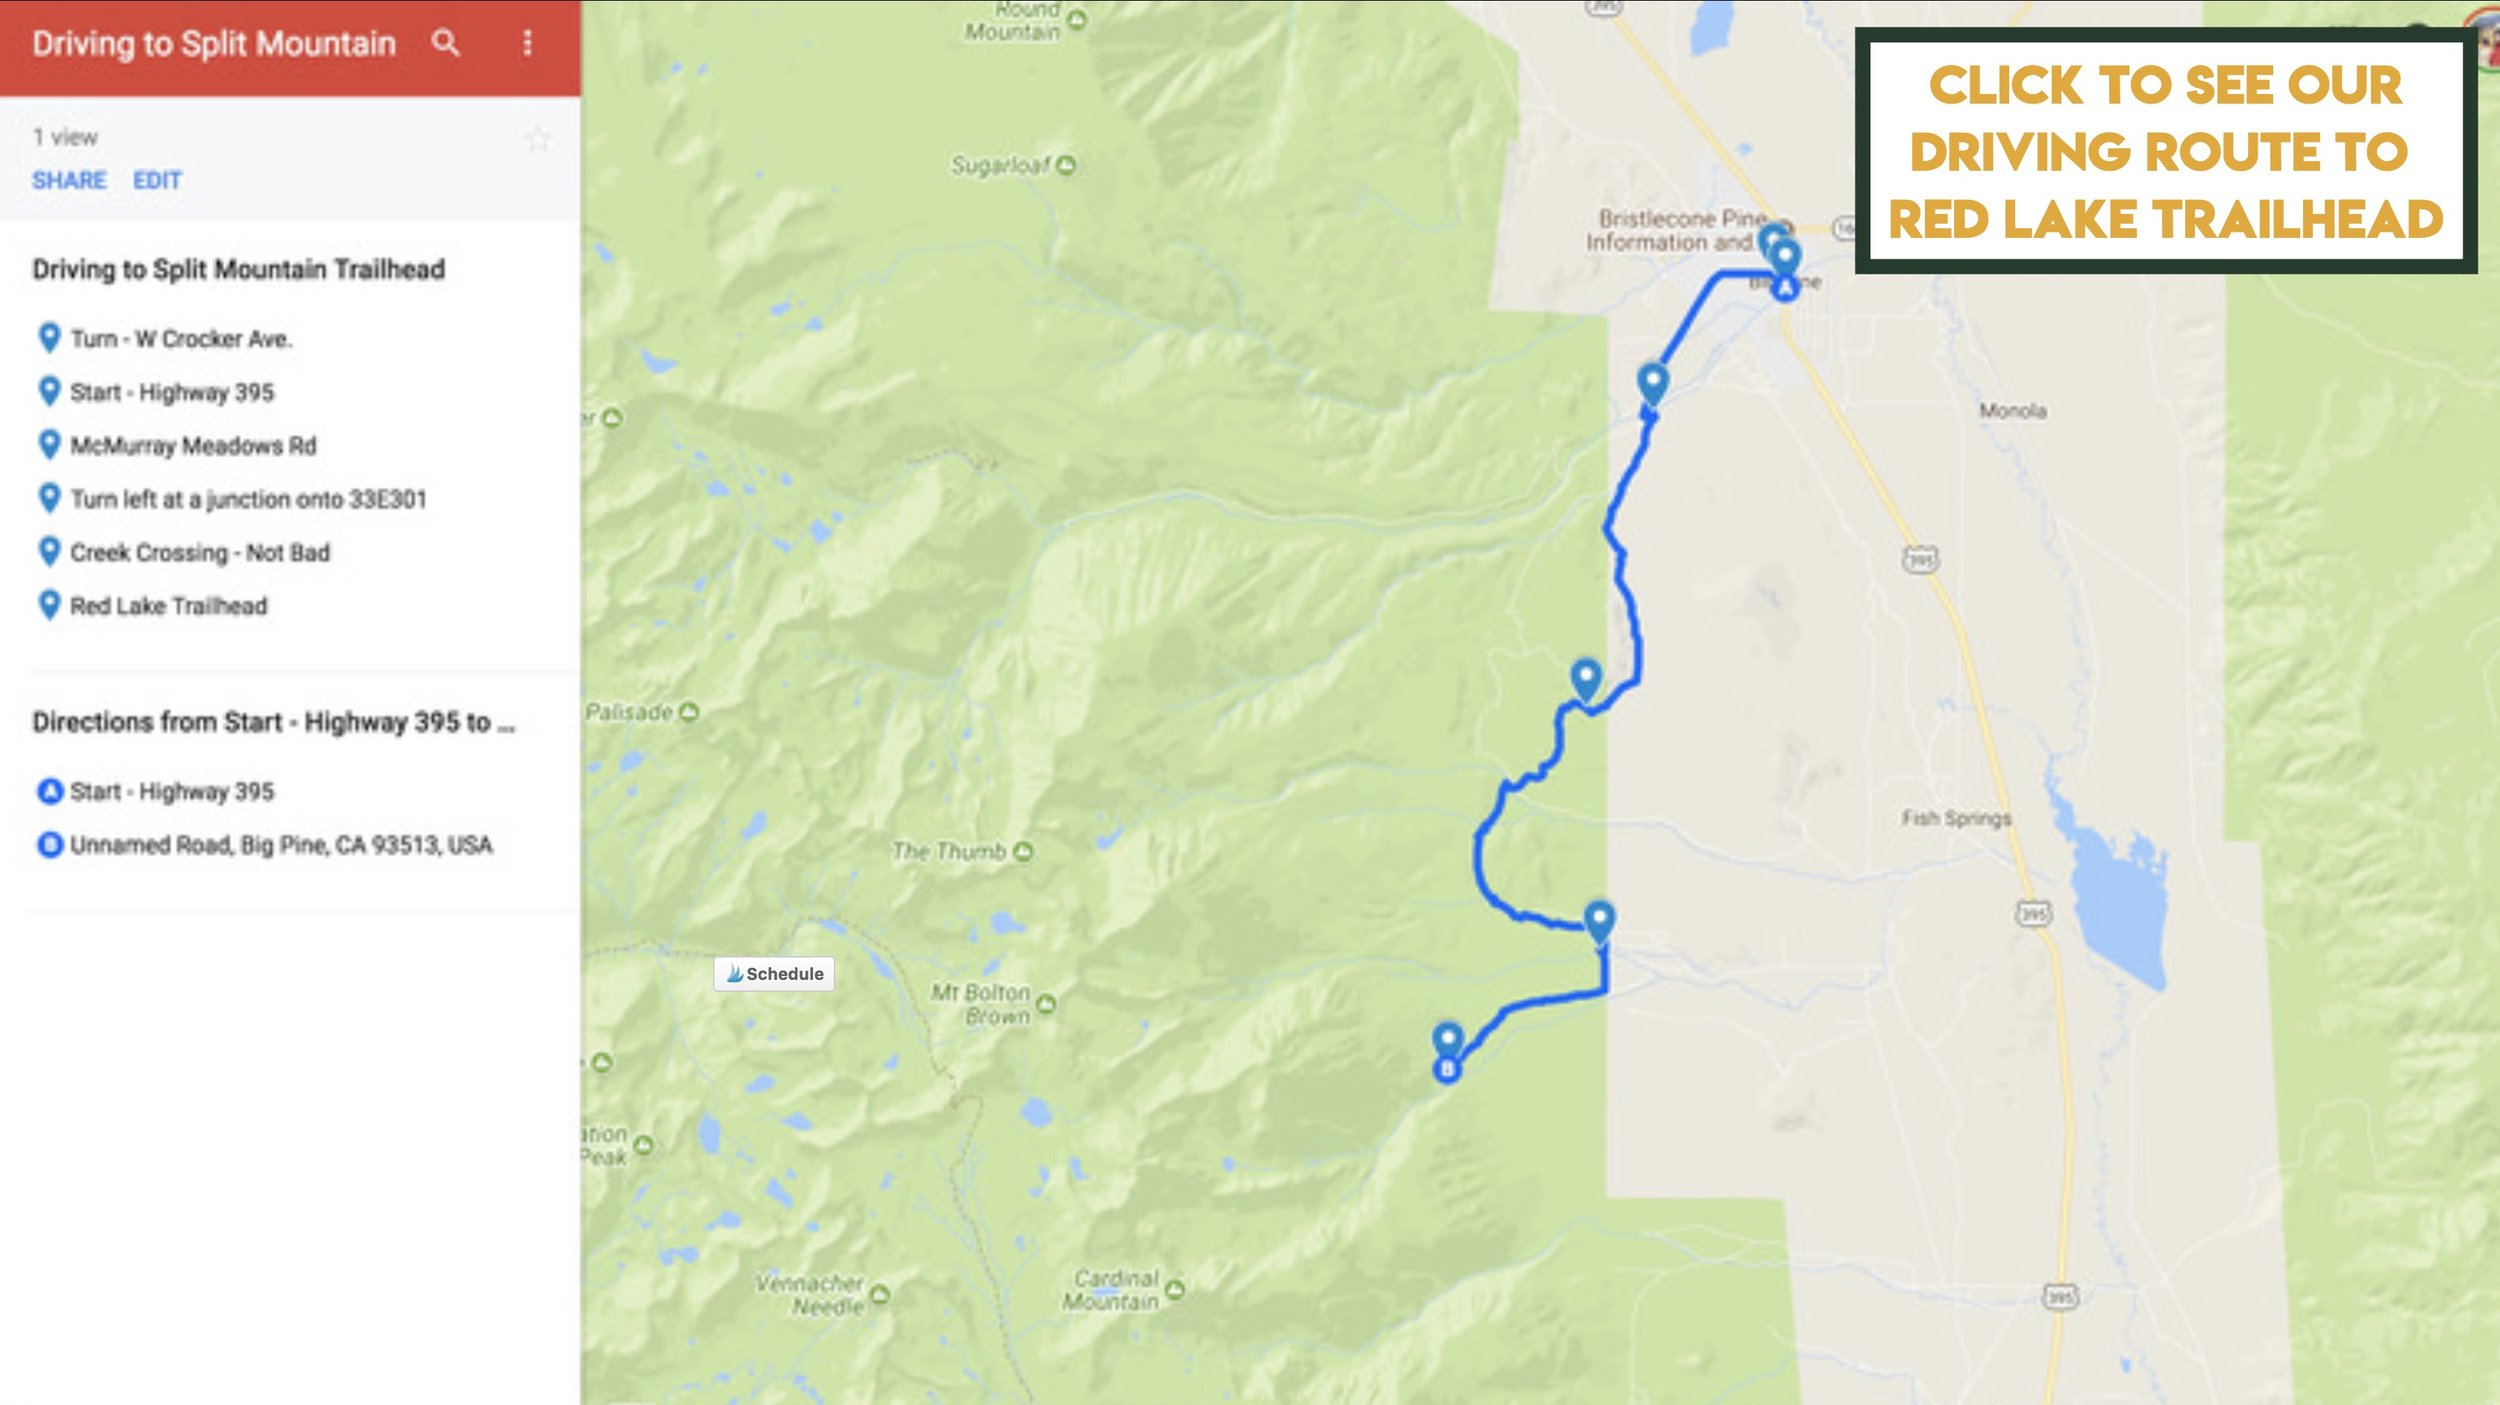 Our driving route to Red Lake Trailhead mapped out on google maps from Big Pine, California.